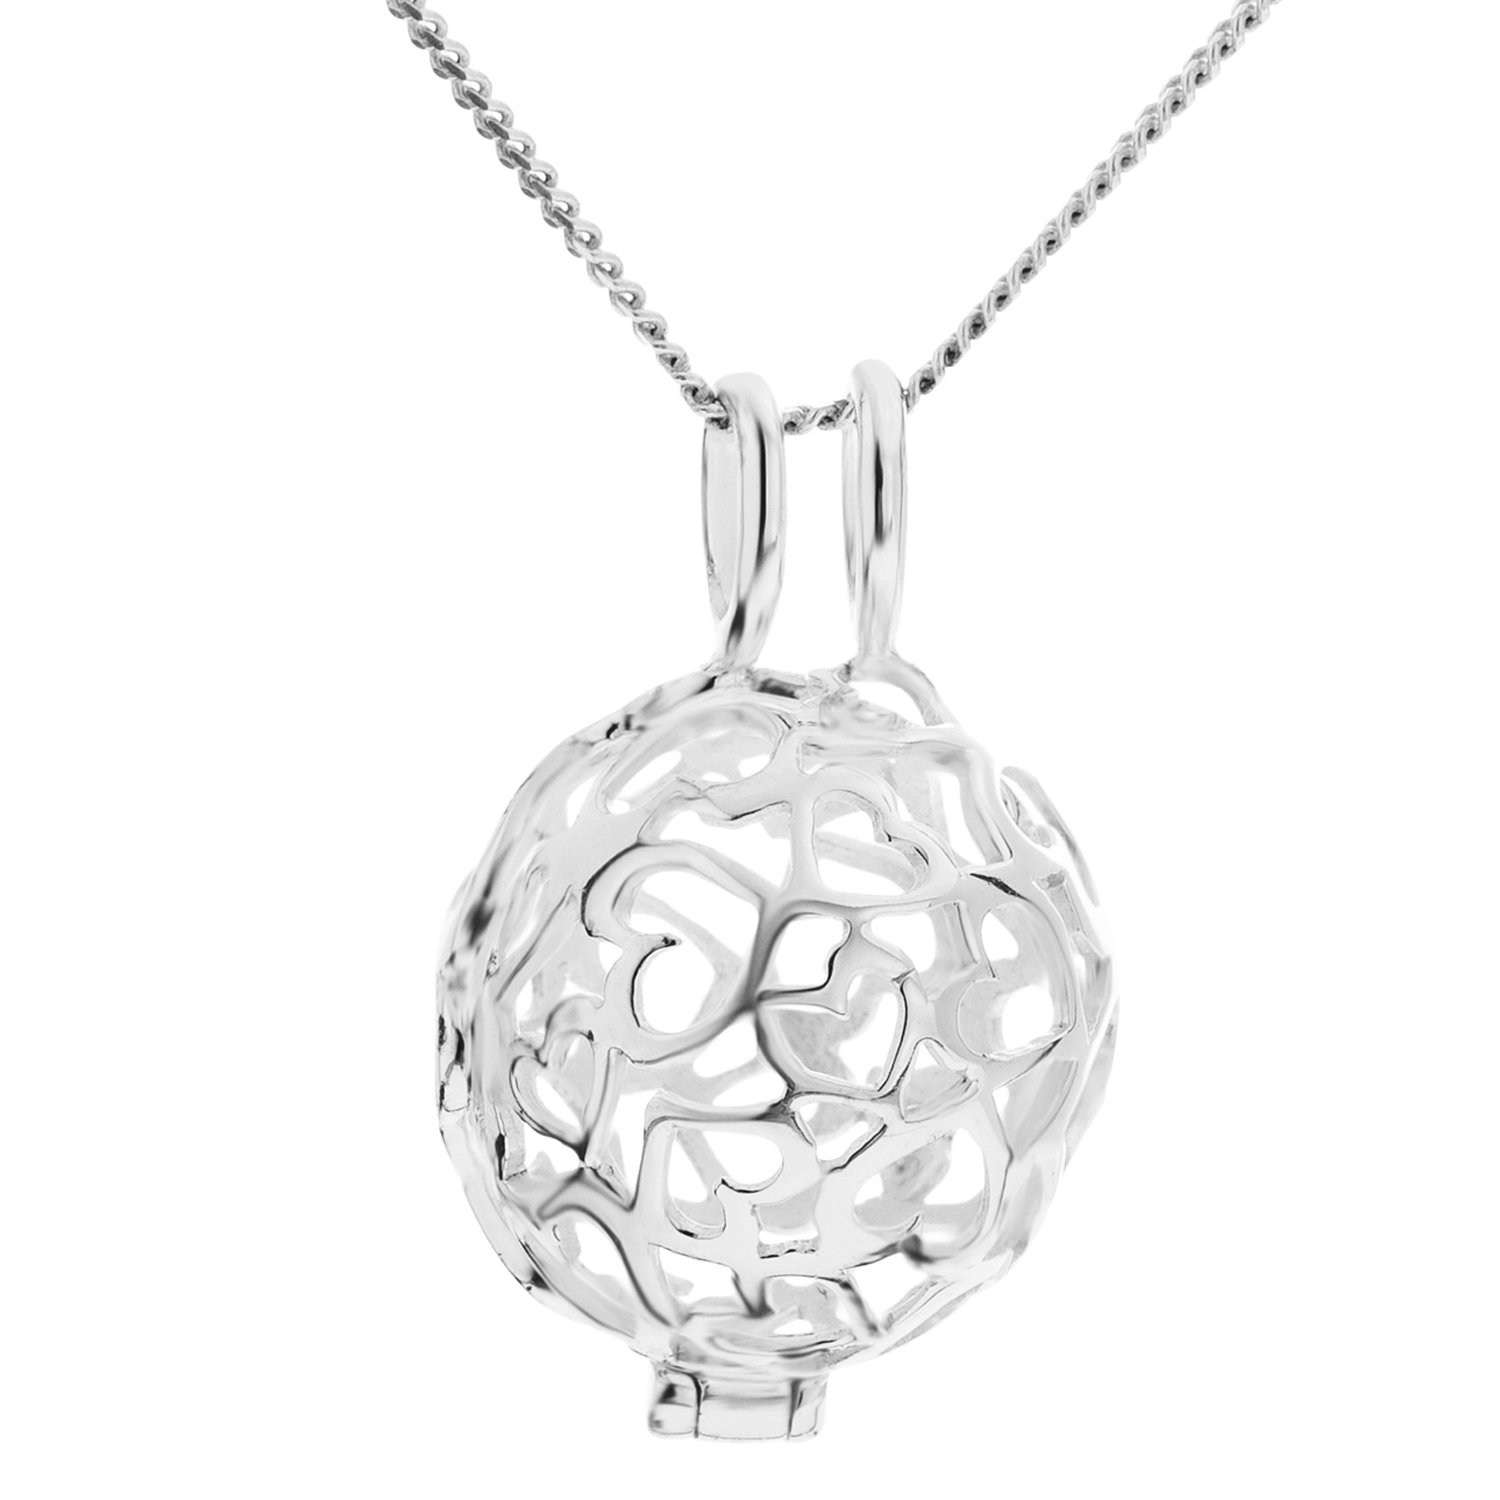 Ornami Sterling Silver Pierced Out Flower Disc Pendant on Chain of 46cm MAGCBpntS